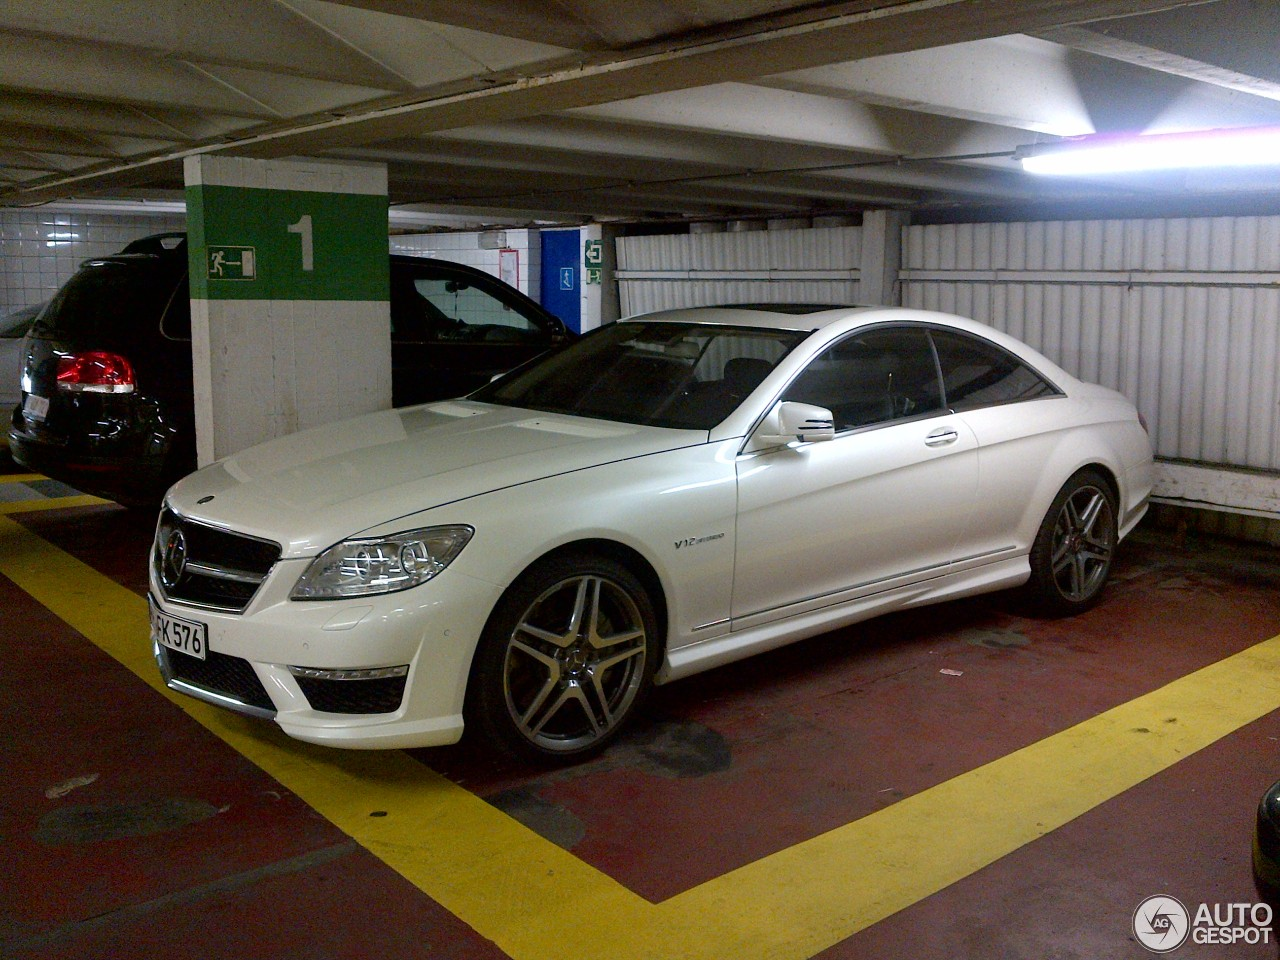 mercedes benz cl 65 amg c216 2011 16 december 2012 autogespot. Black Bedroom Furniture Sets. Home Design Ideas